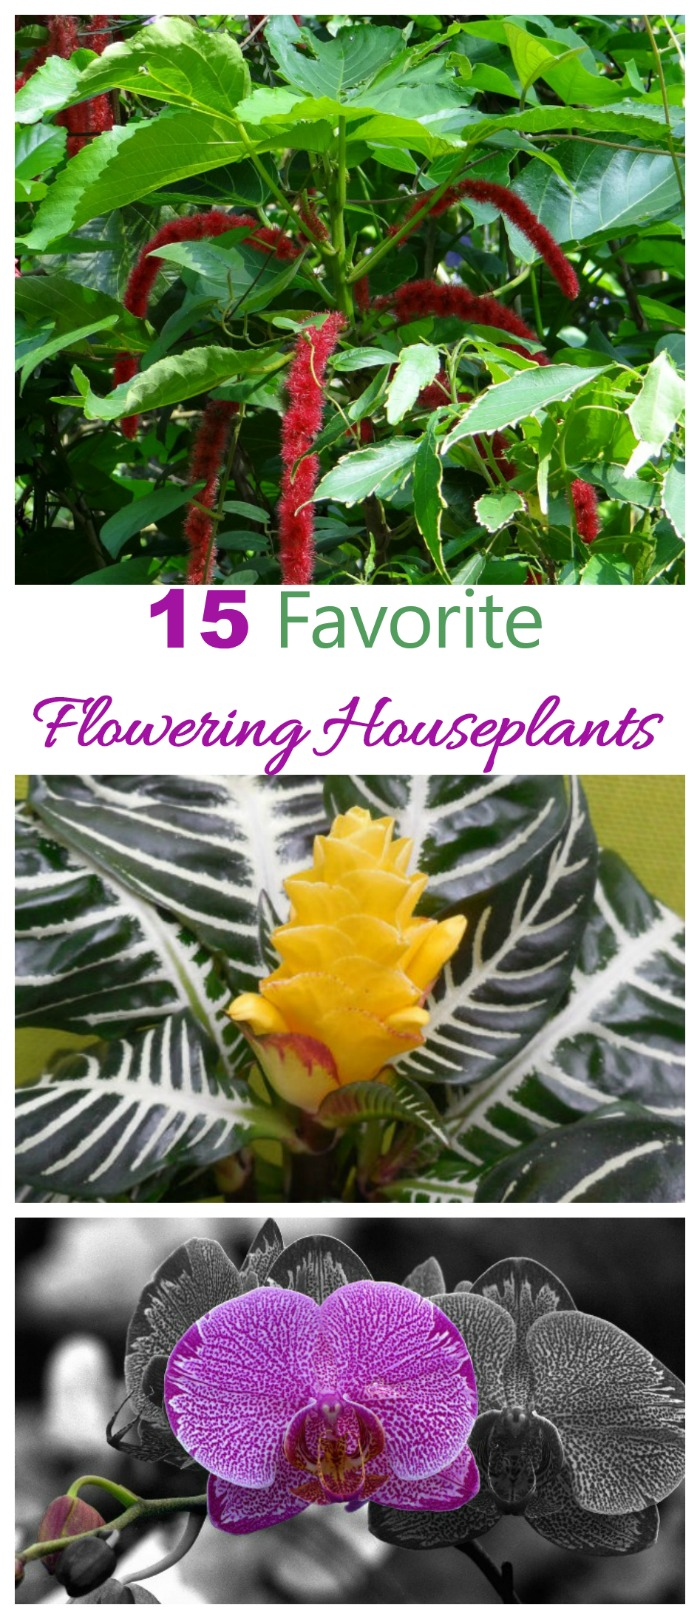 These 15 flowering houseplants will bring the color and warmth of the garden indoors #floweringhouseplants #bloomingindoorplants